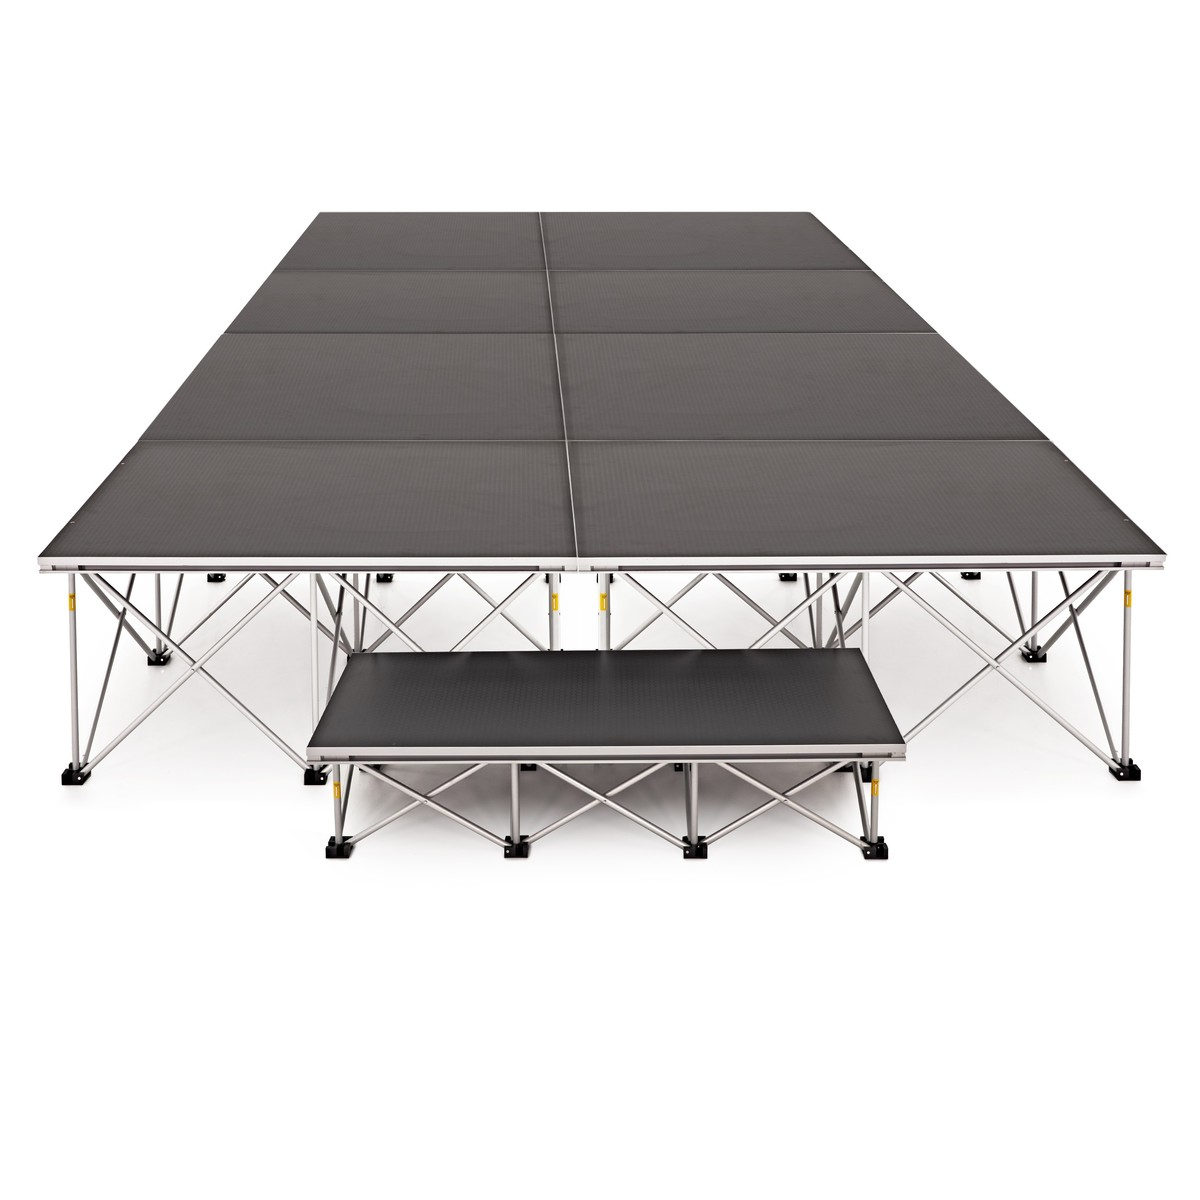 2m x 4m Portable Stage Kit by Gear4music 40cm